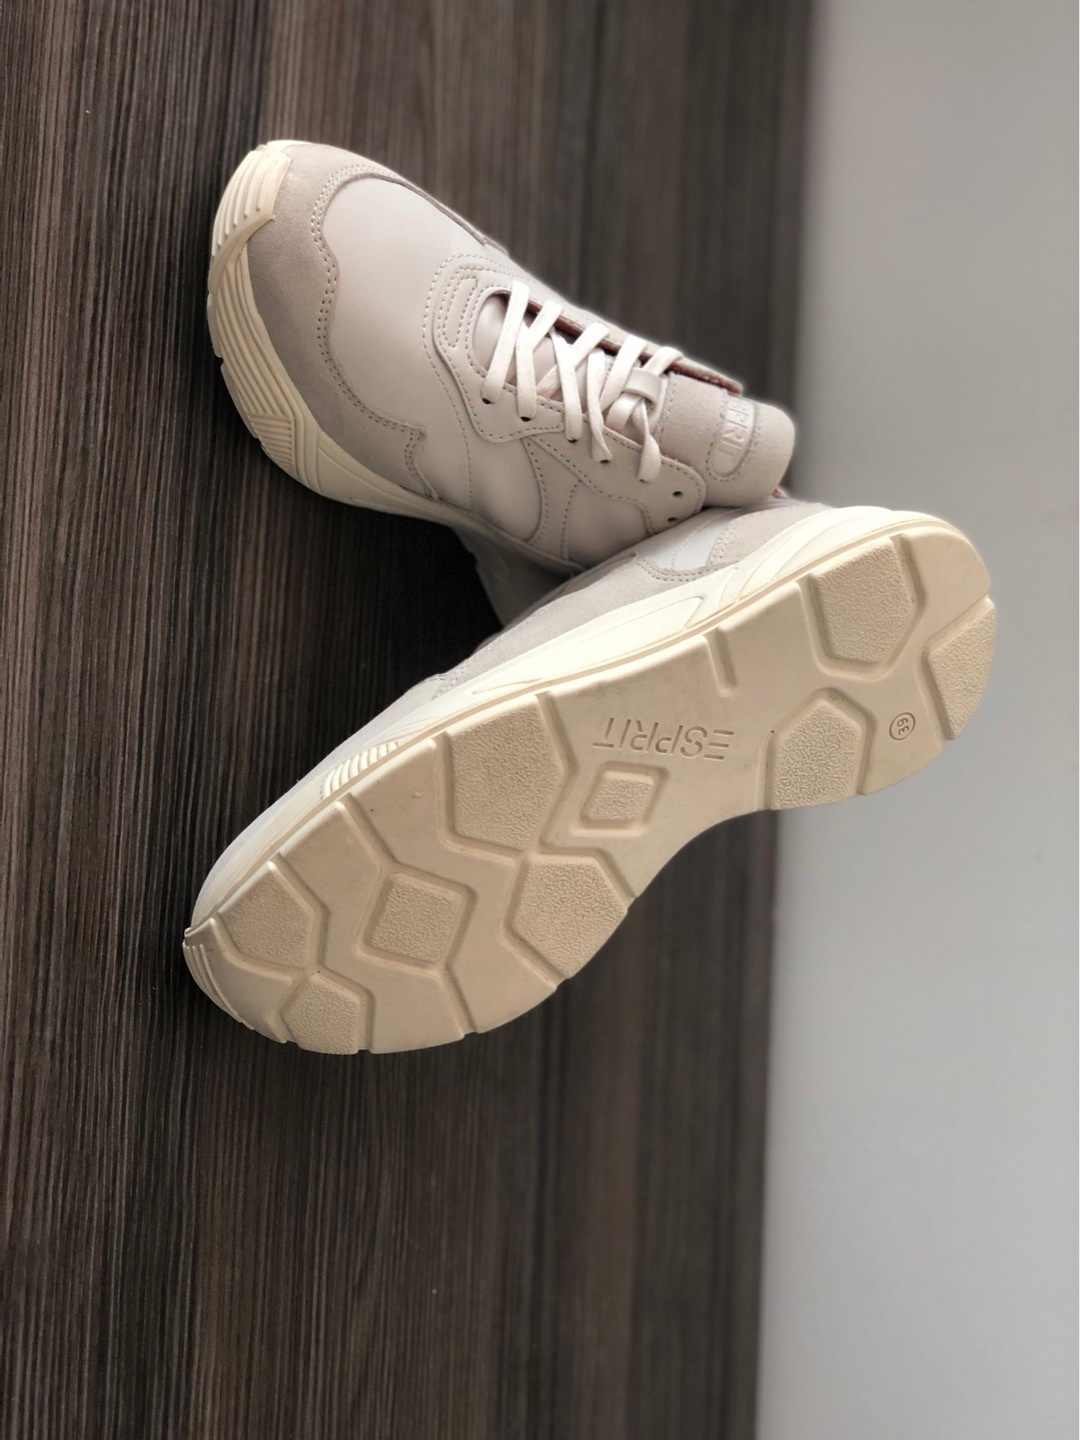 Women's sneakers - ESPRIT photo 3